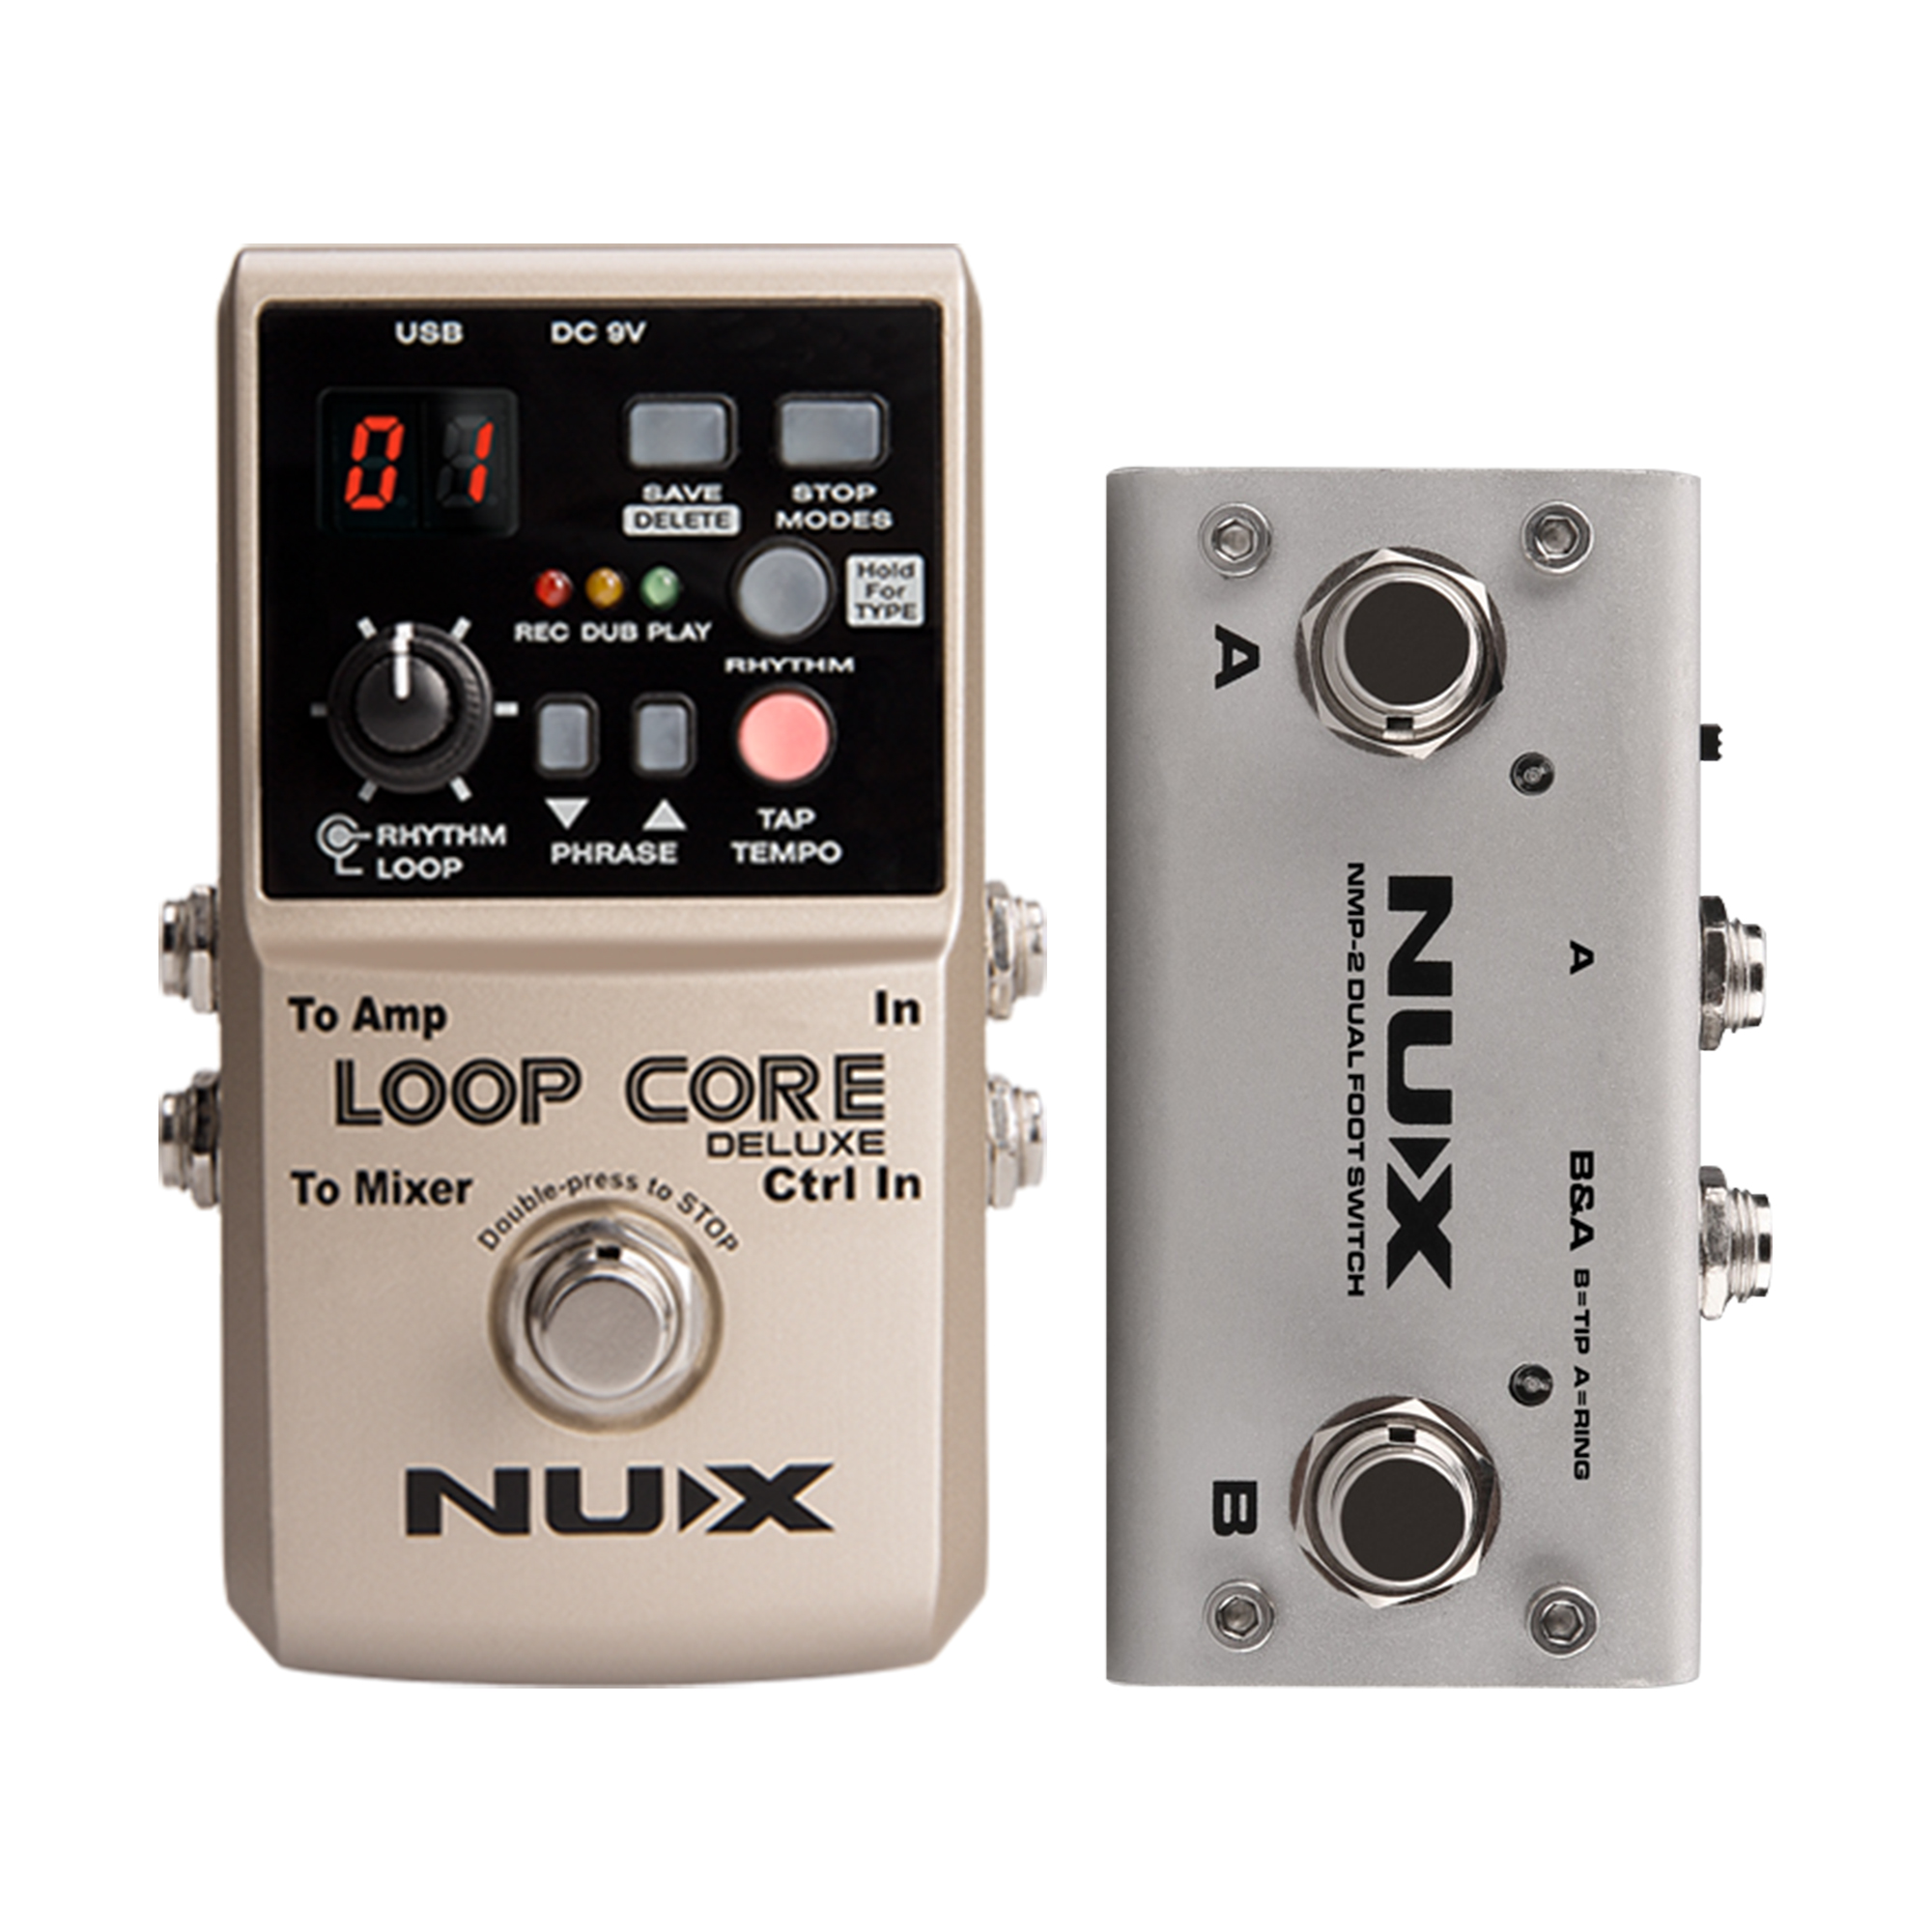 NUX Loop Core Deluxe Looper Pedal 40 different drum rhythms 8 Hours Record Loop Guitar Effect Stompbox with Dual FootSwitch nux time core deluxe delay pedal different types of delays to the upmost ambience